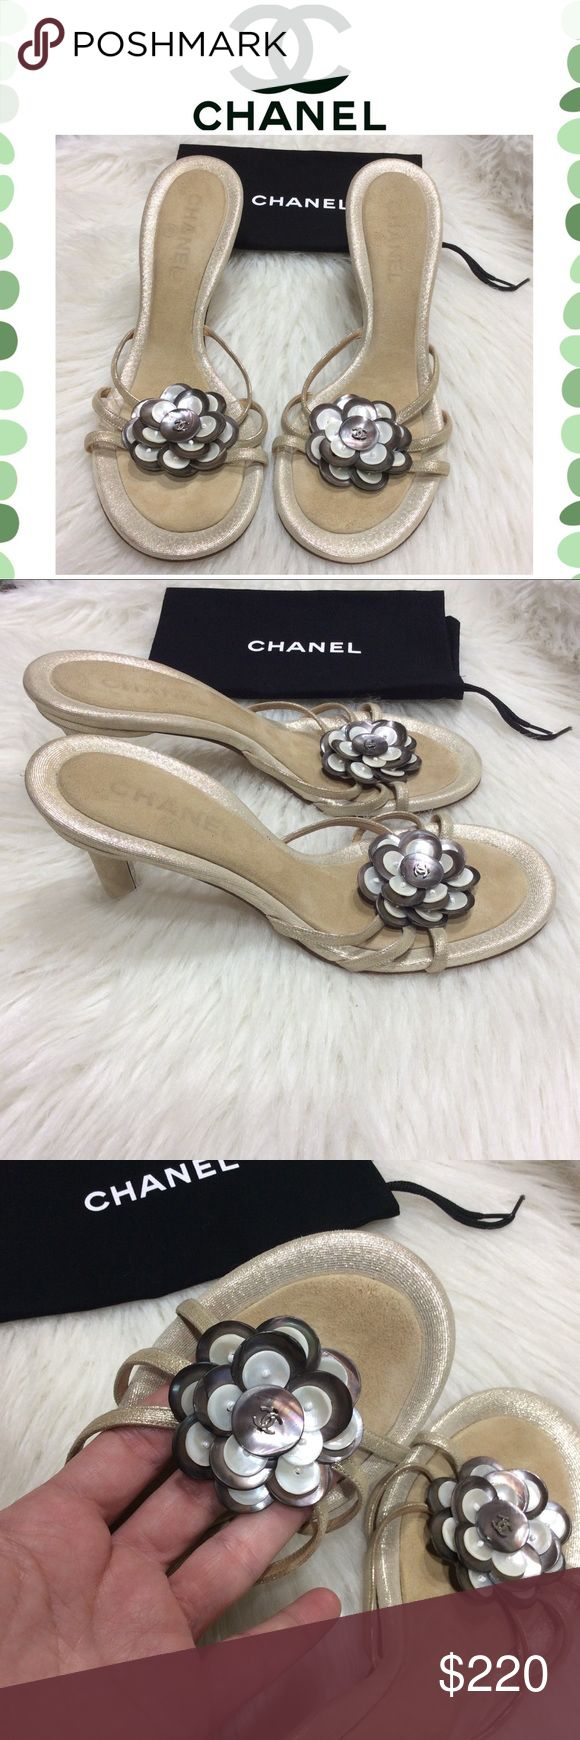 Authentic Chanel flower heels Authentic CHANEL Camellia Mother of Pearl Shell Flower Heels. Very good Preowned condition. Super cute for any occasion. Come with a dust bag. No box CHANEL Shoes Heels